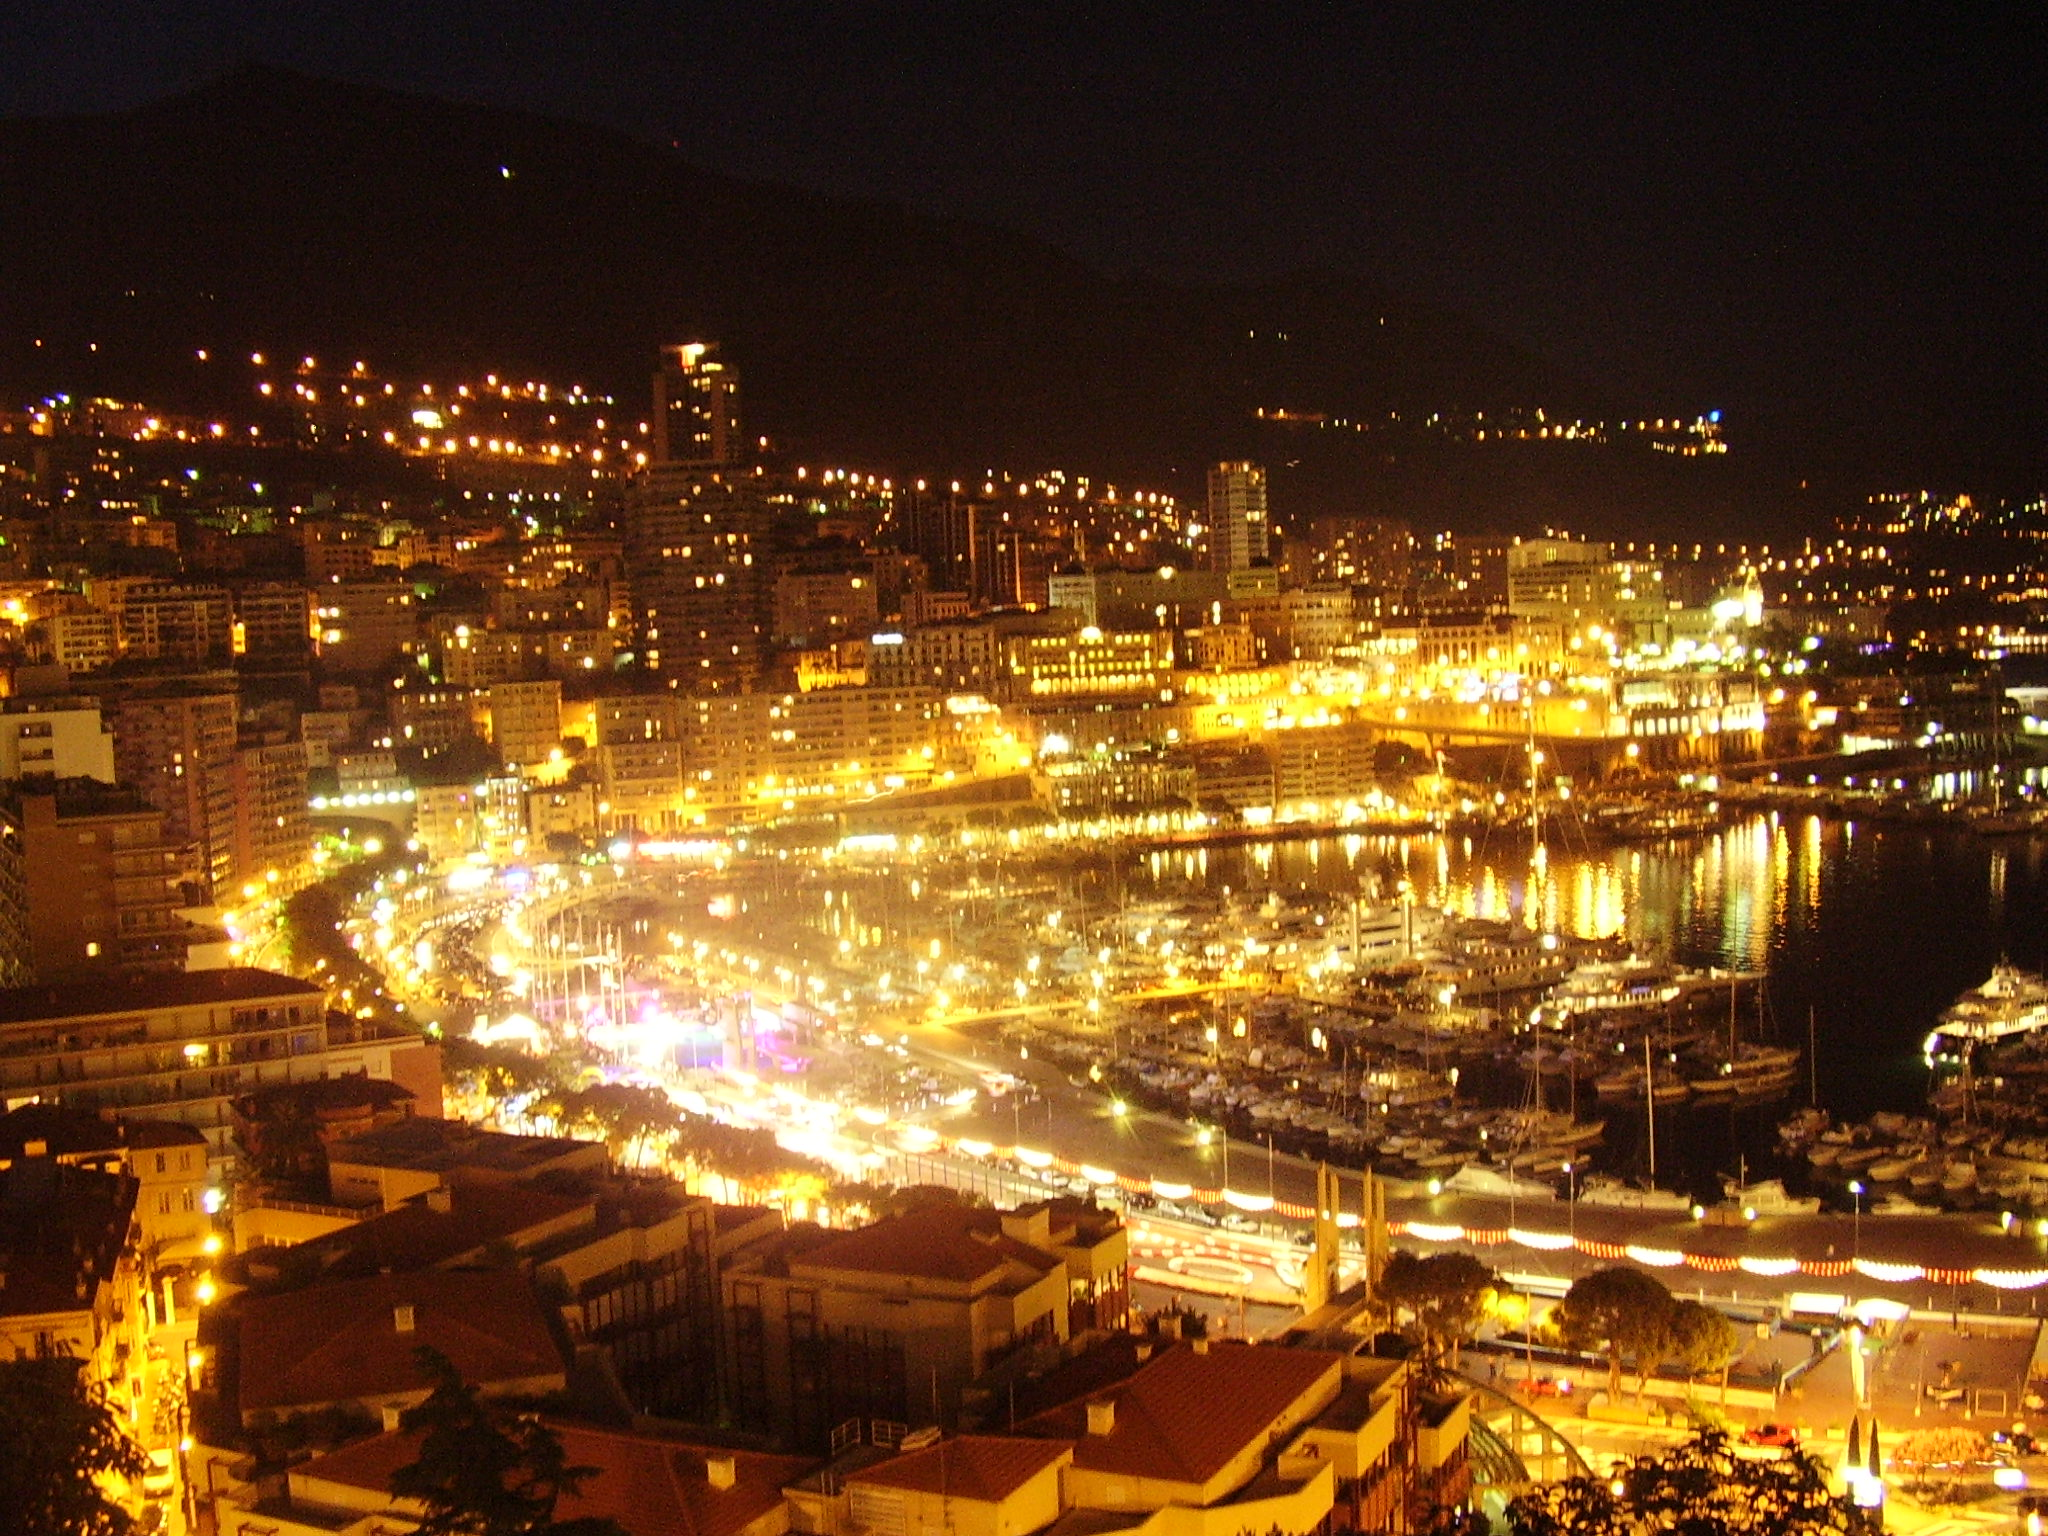 Monaco in South Europe, currently holds the record for being the most densely populated nation in the world.